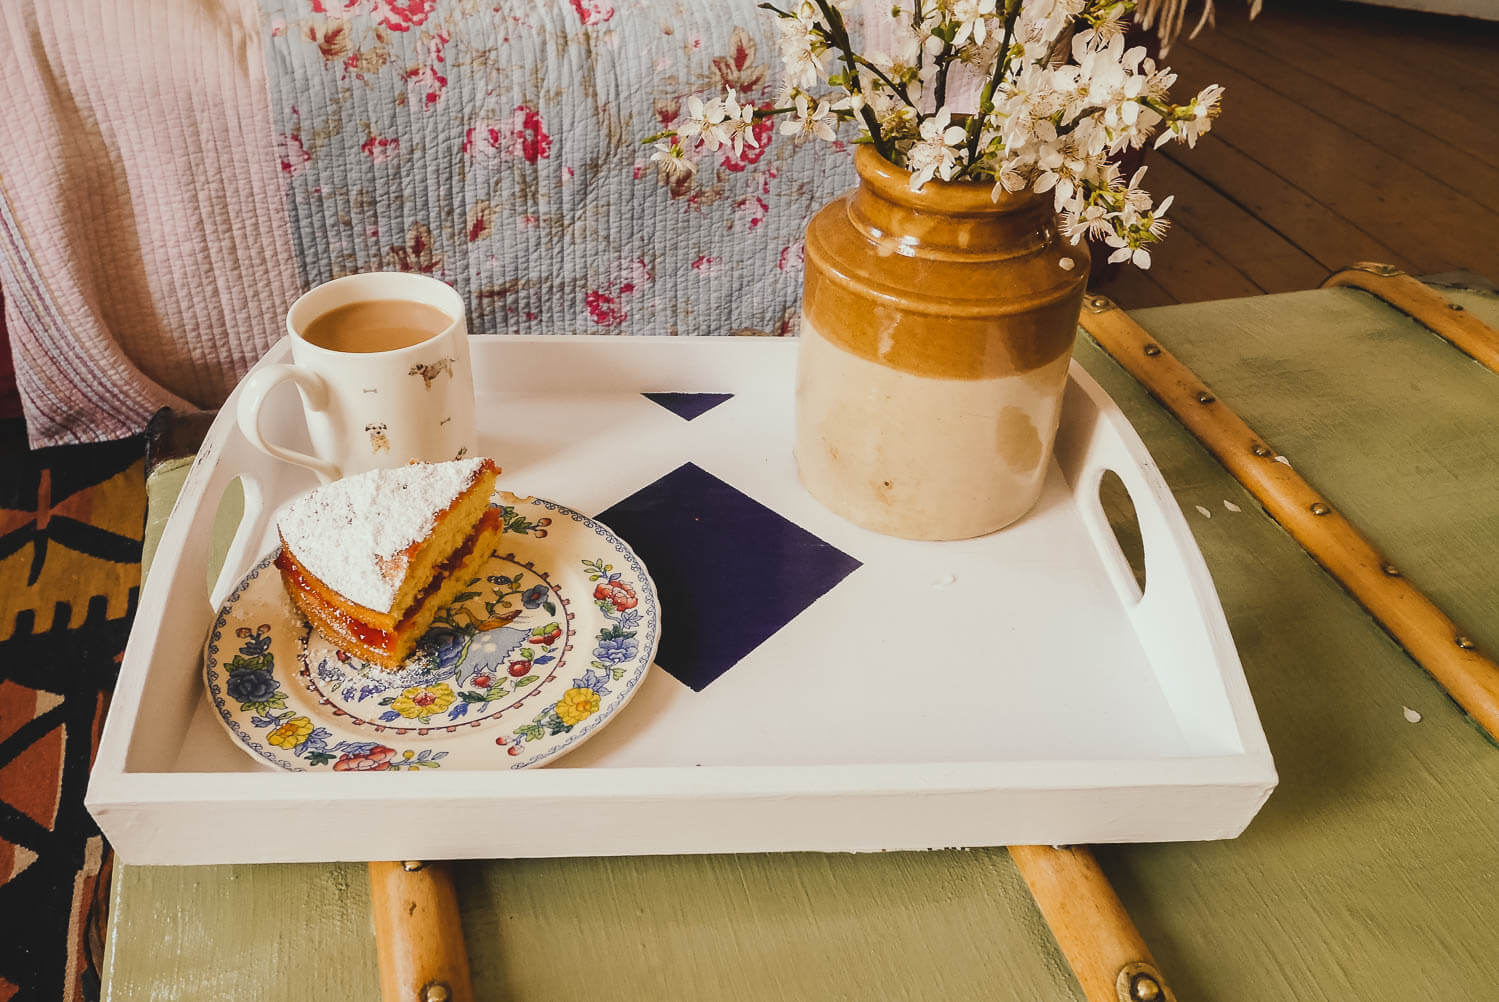 Tea and cake on an upcycled trunk coffee table